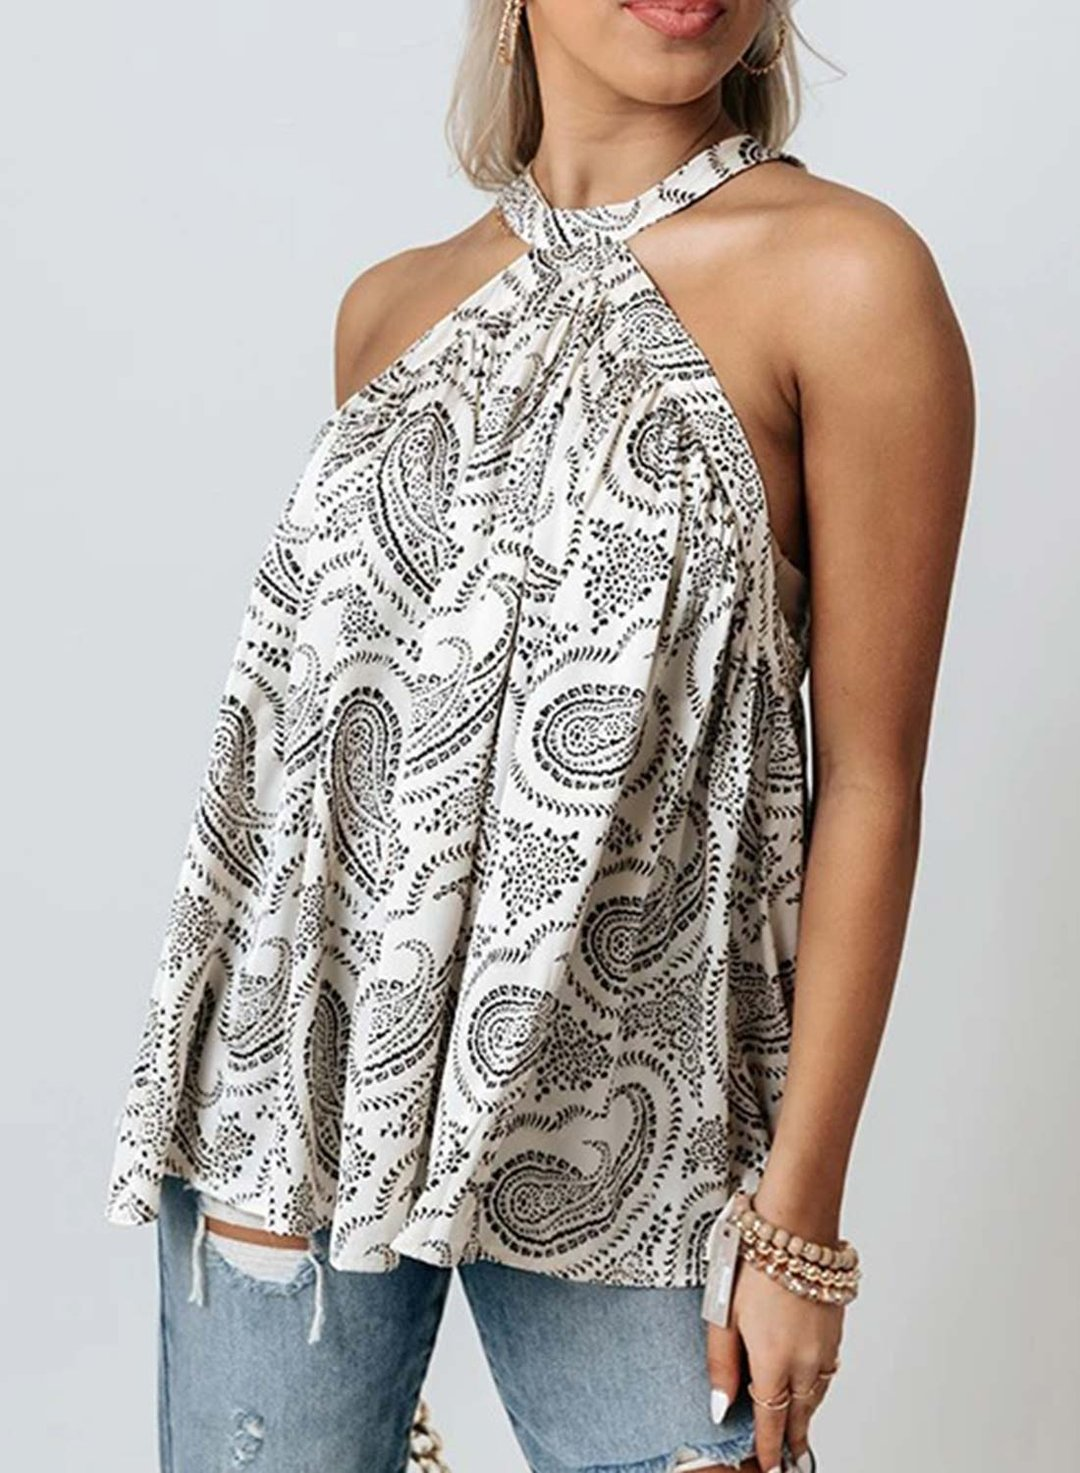 White Women's Tank Tops Tribal Halter Cold Shoulder Tank Tops LC2562136-1